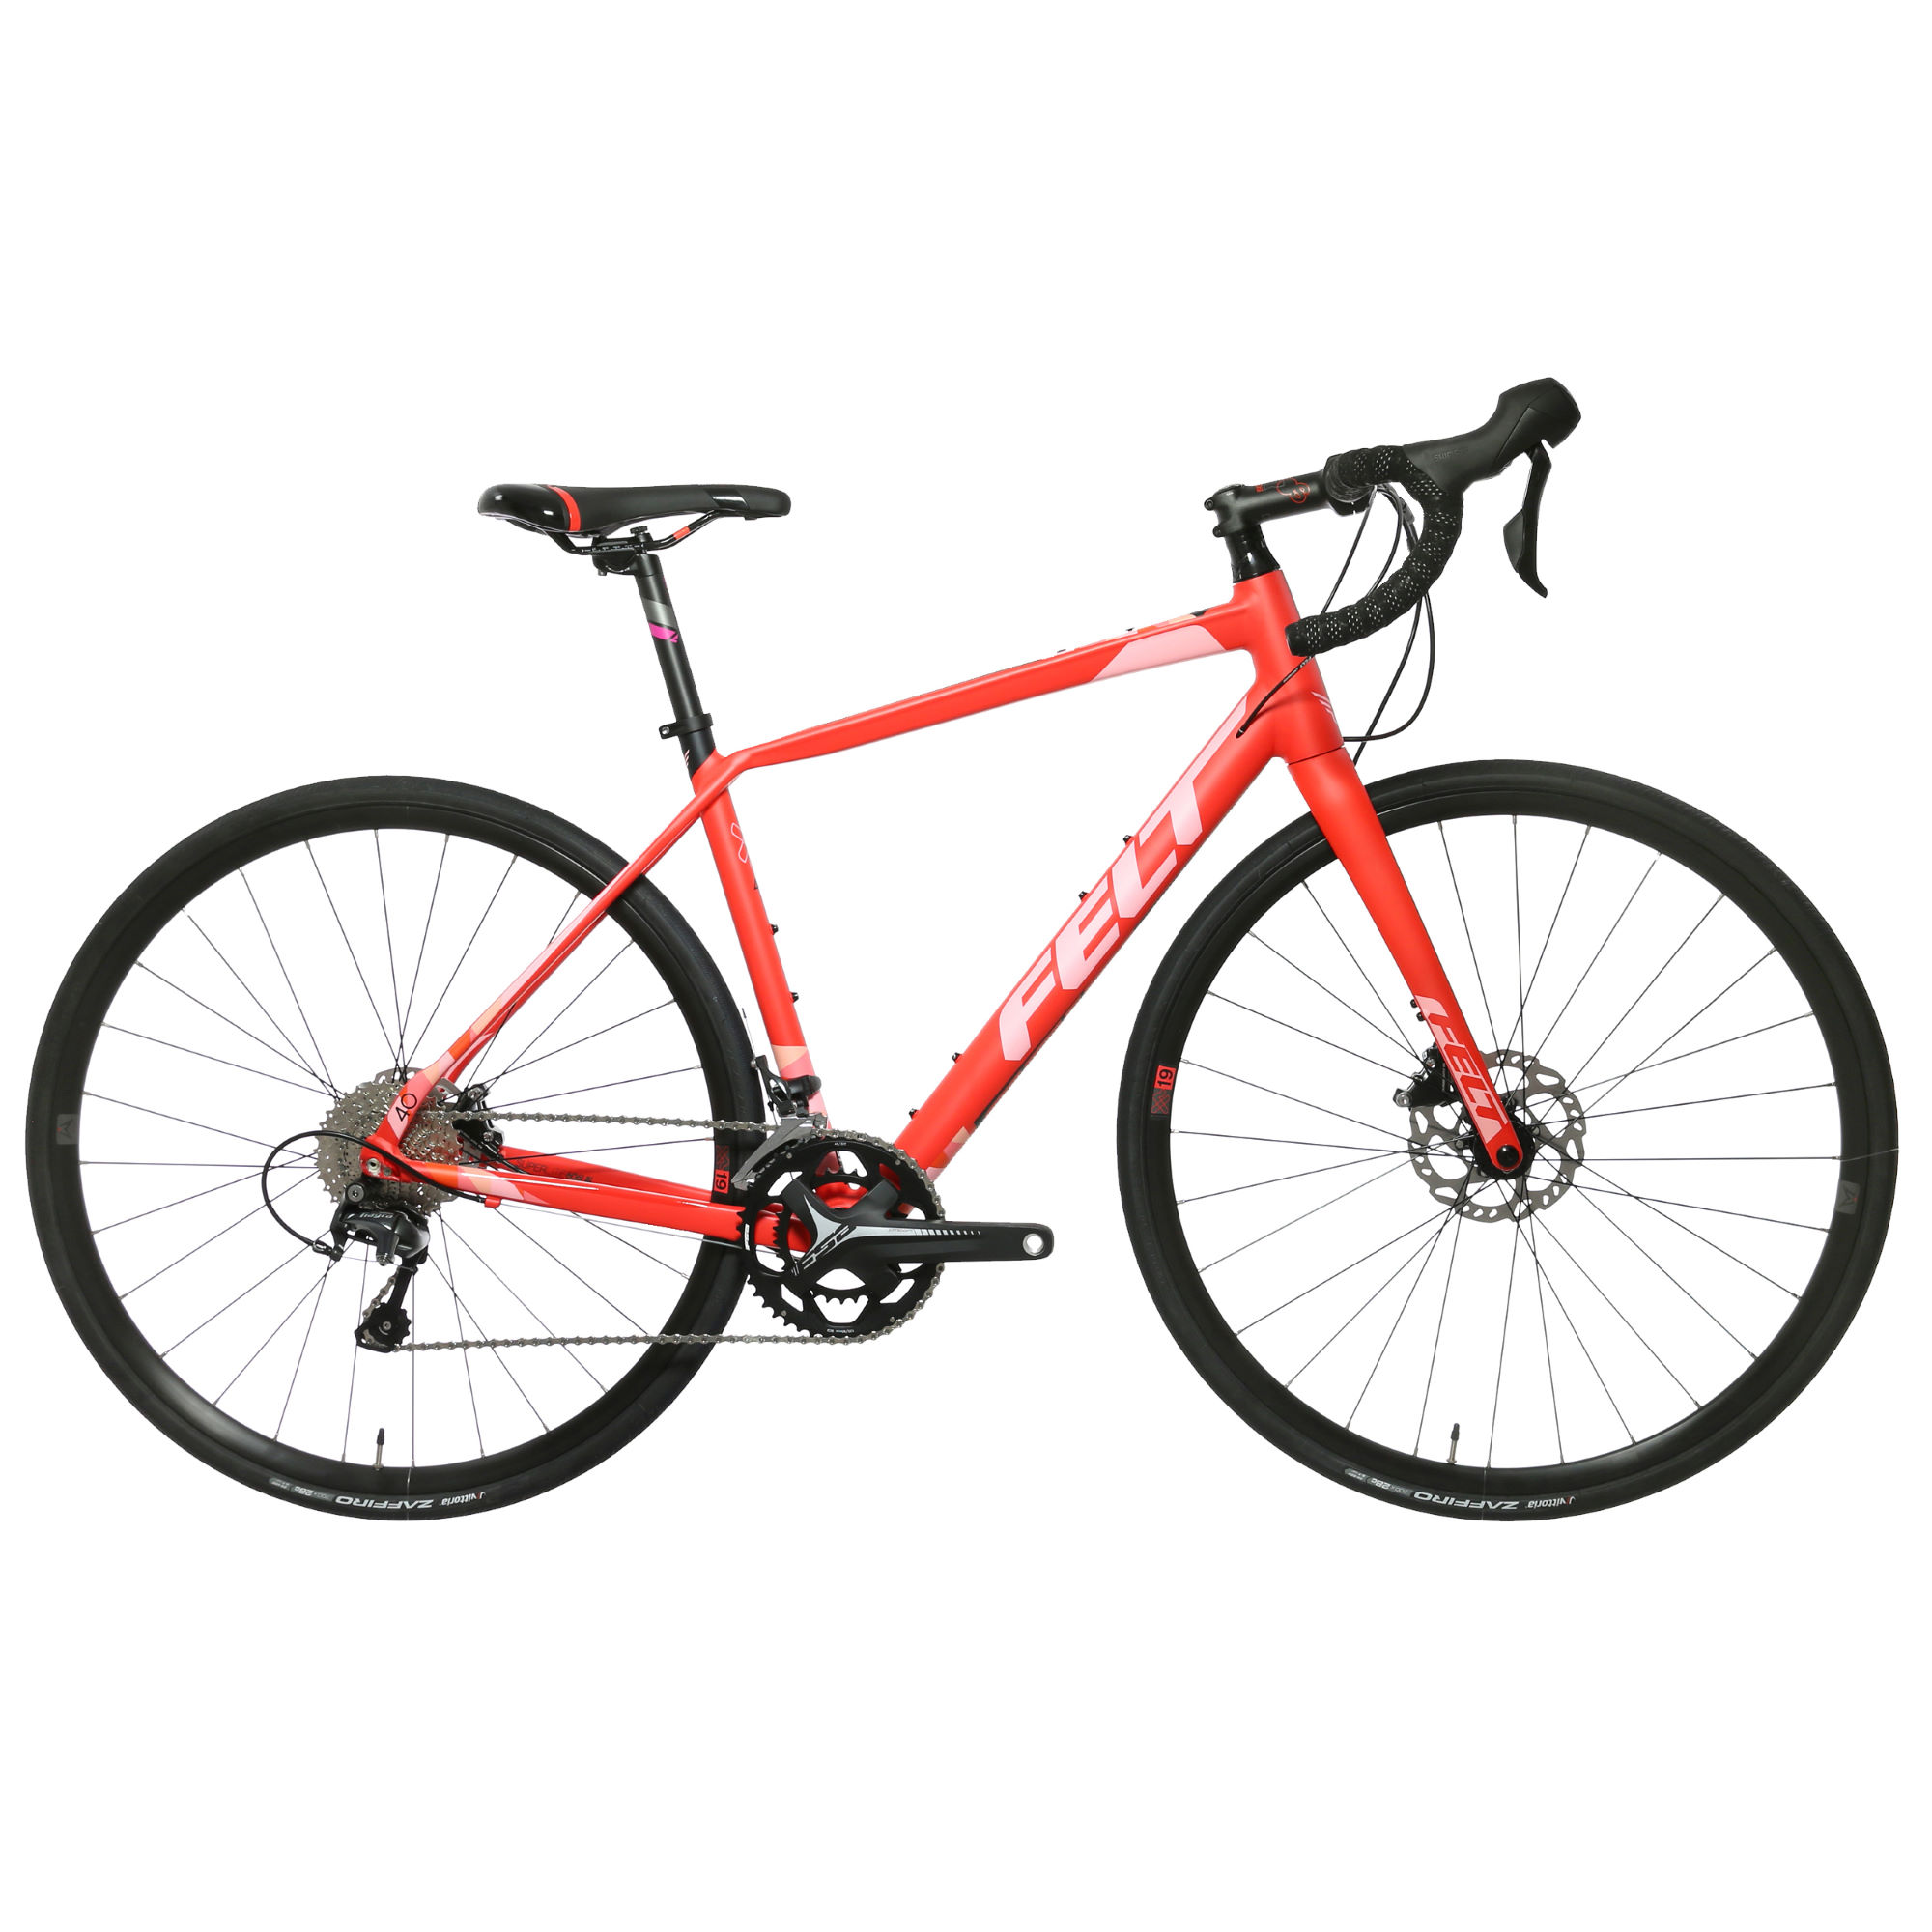 Superb range of Bikes and Cycle to Work accessories from the UK's No.1 online cycling retailer. Quick and Efficient online process of Cyclescheme certificates. Wiggle uses cookies to .